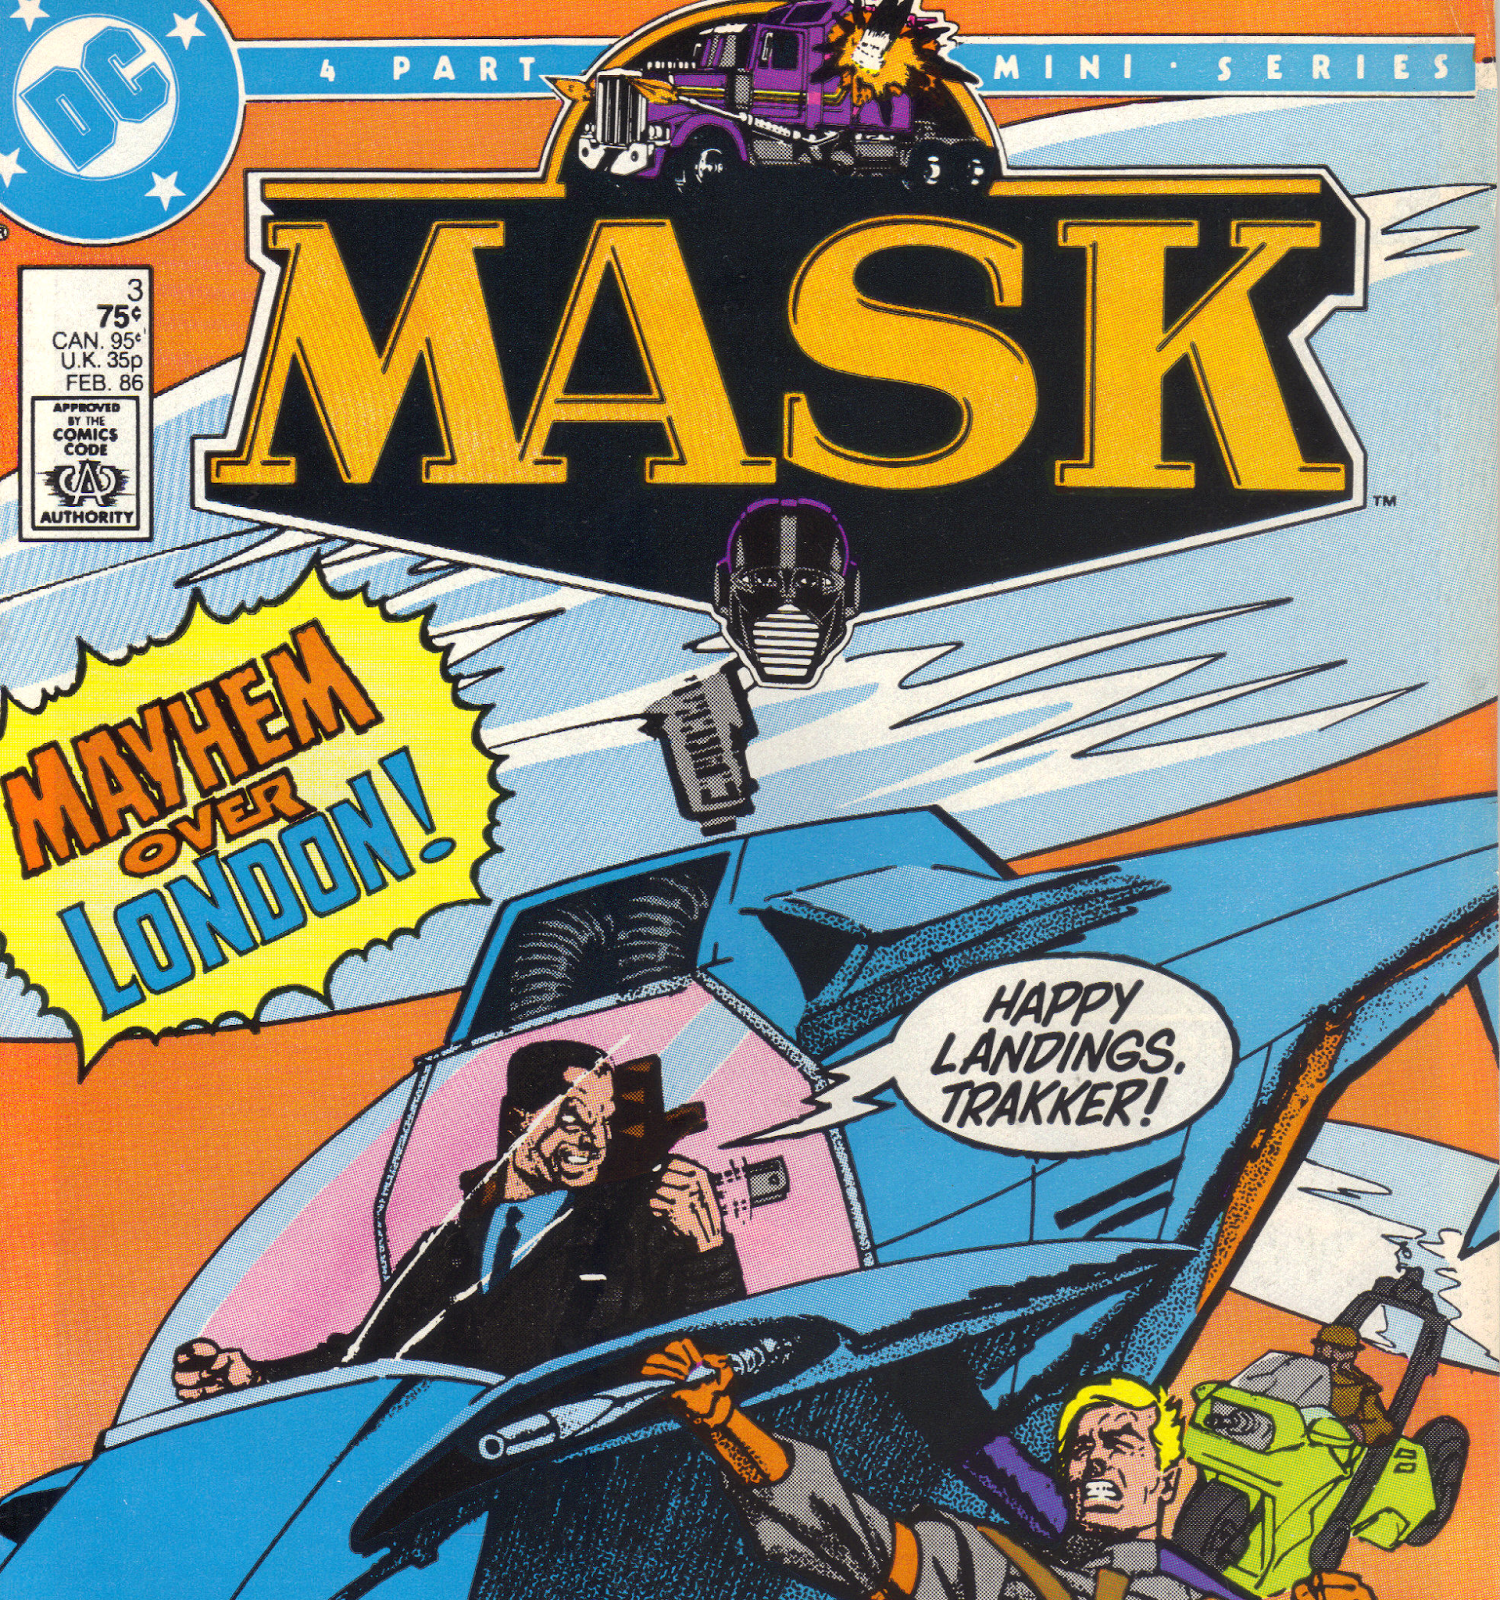 M.A.S.K. DC Comics Vol 1 Issue 3 - Agents of M.A.S.K.